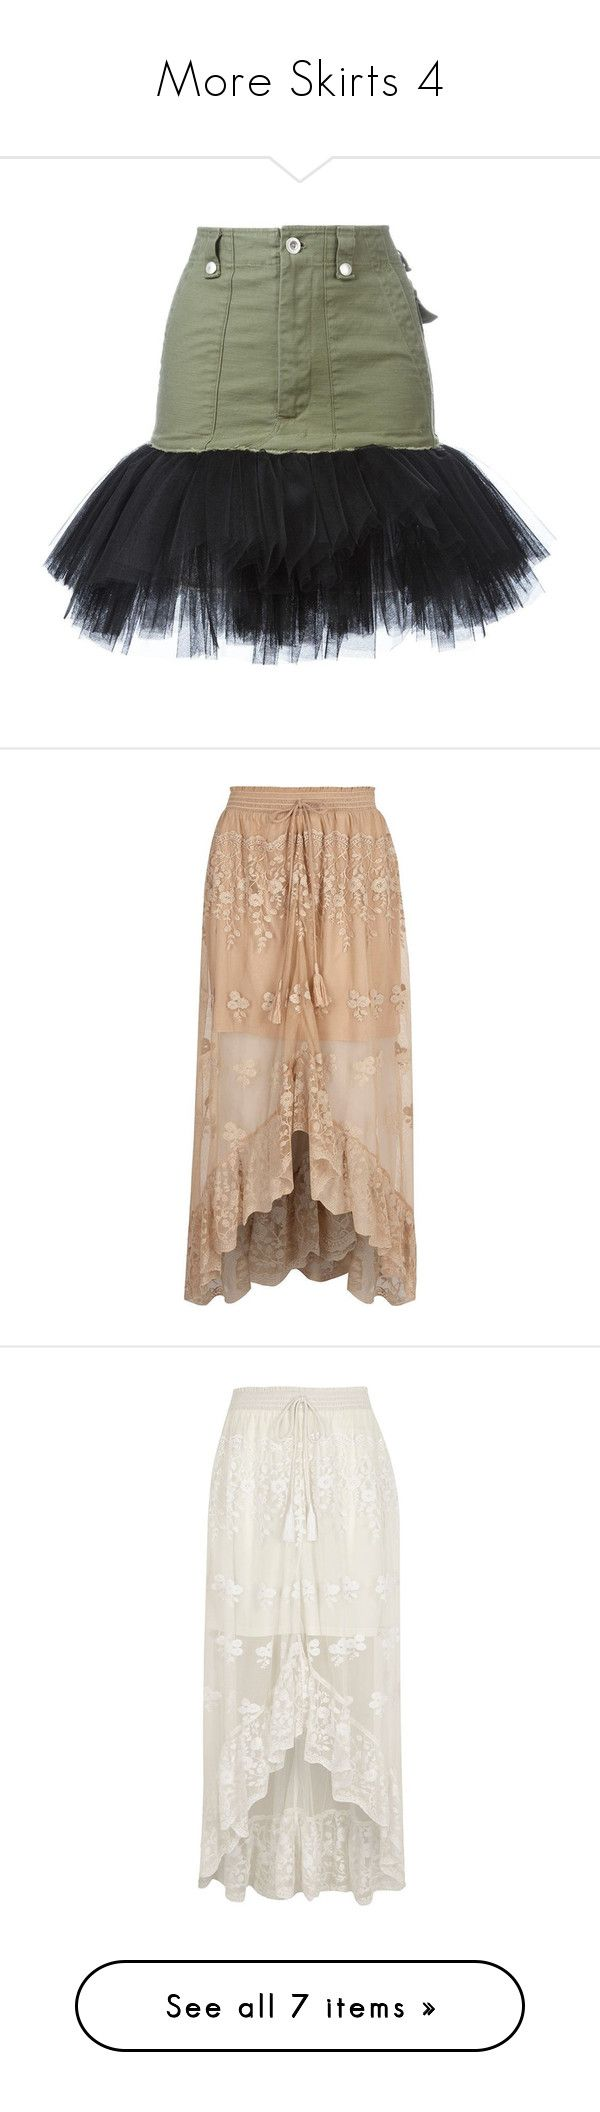 """""""More Skirts 4"""" by thesassystewart on Polyvore featuring skirts, green, tulle skirts, green skirt, green tulle skirt, beige, maxi skirts, women, high low maxi skirt and floor length skirt"""